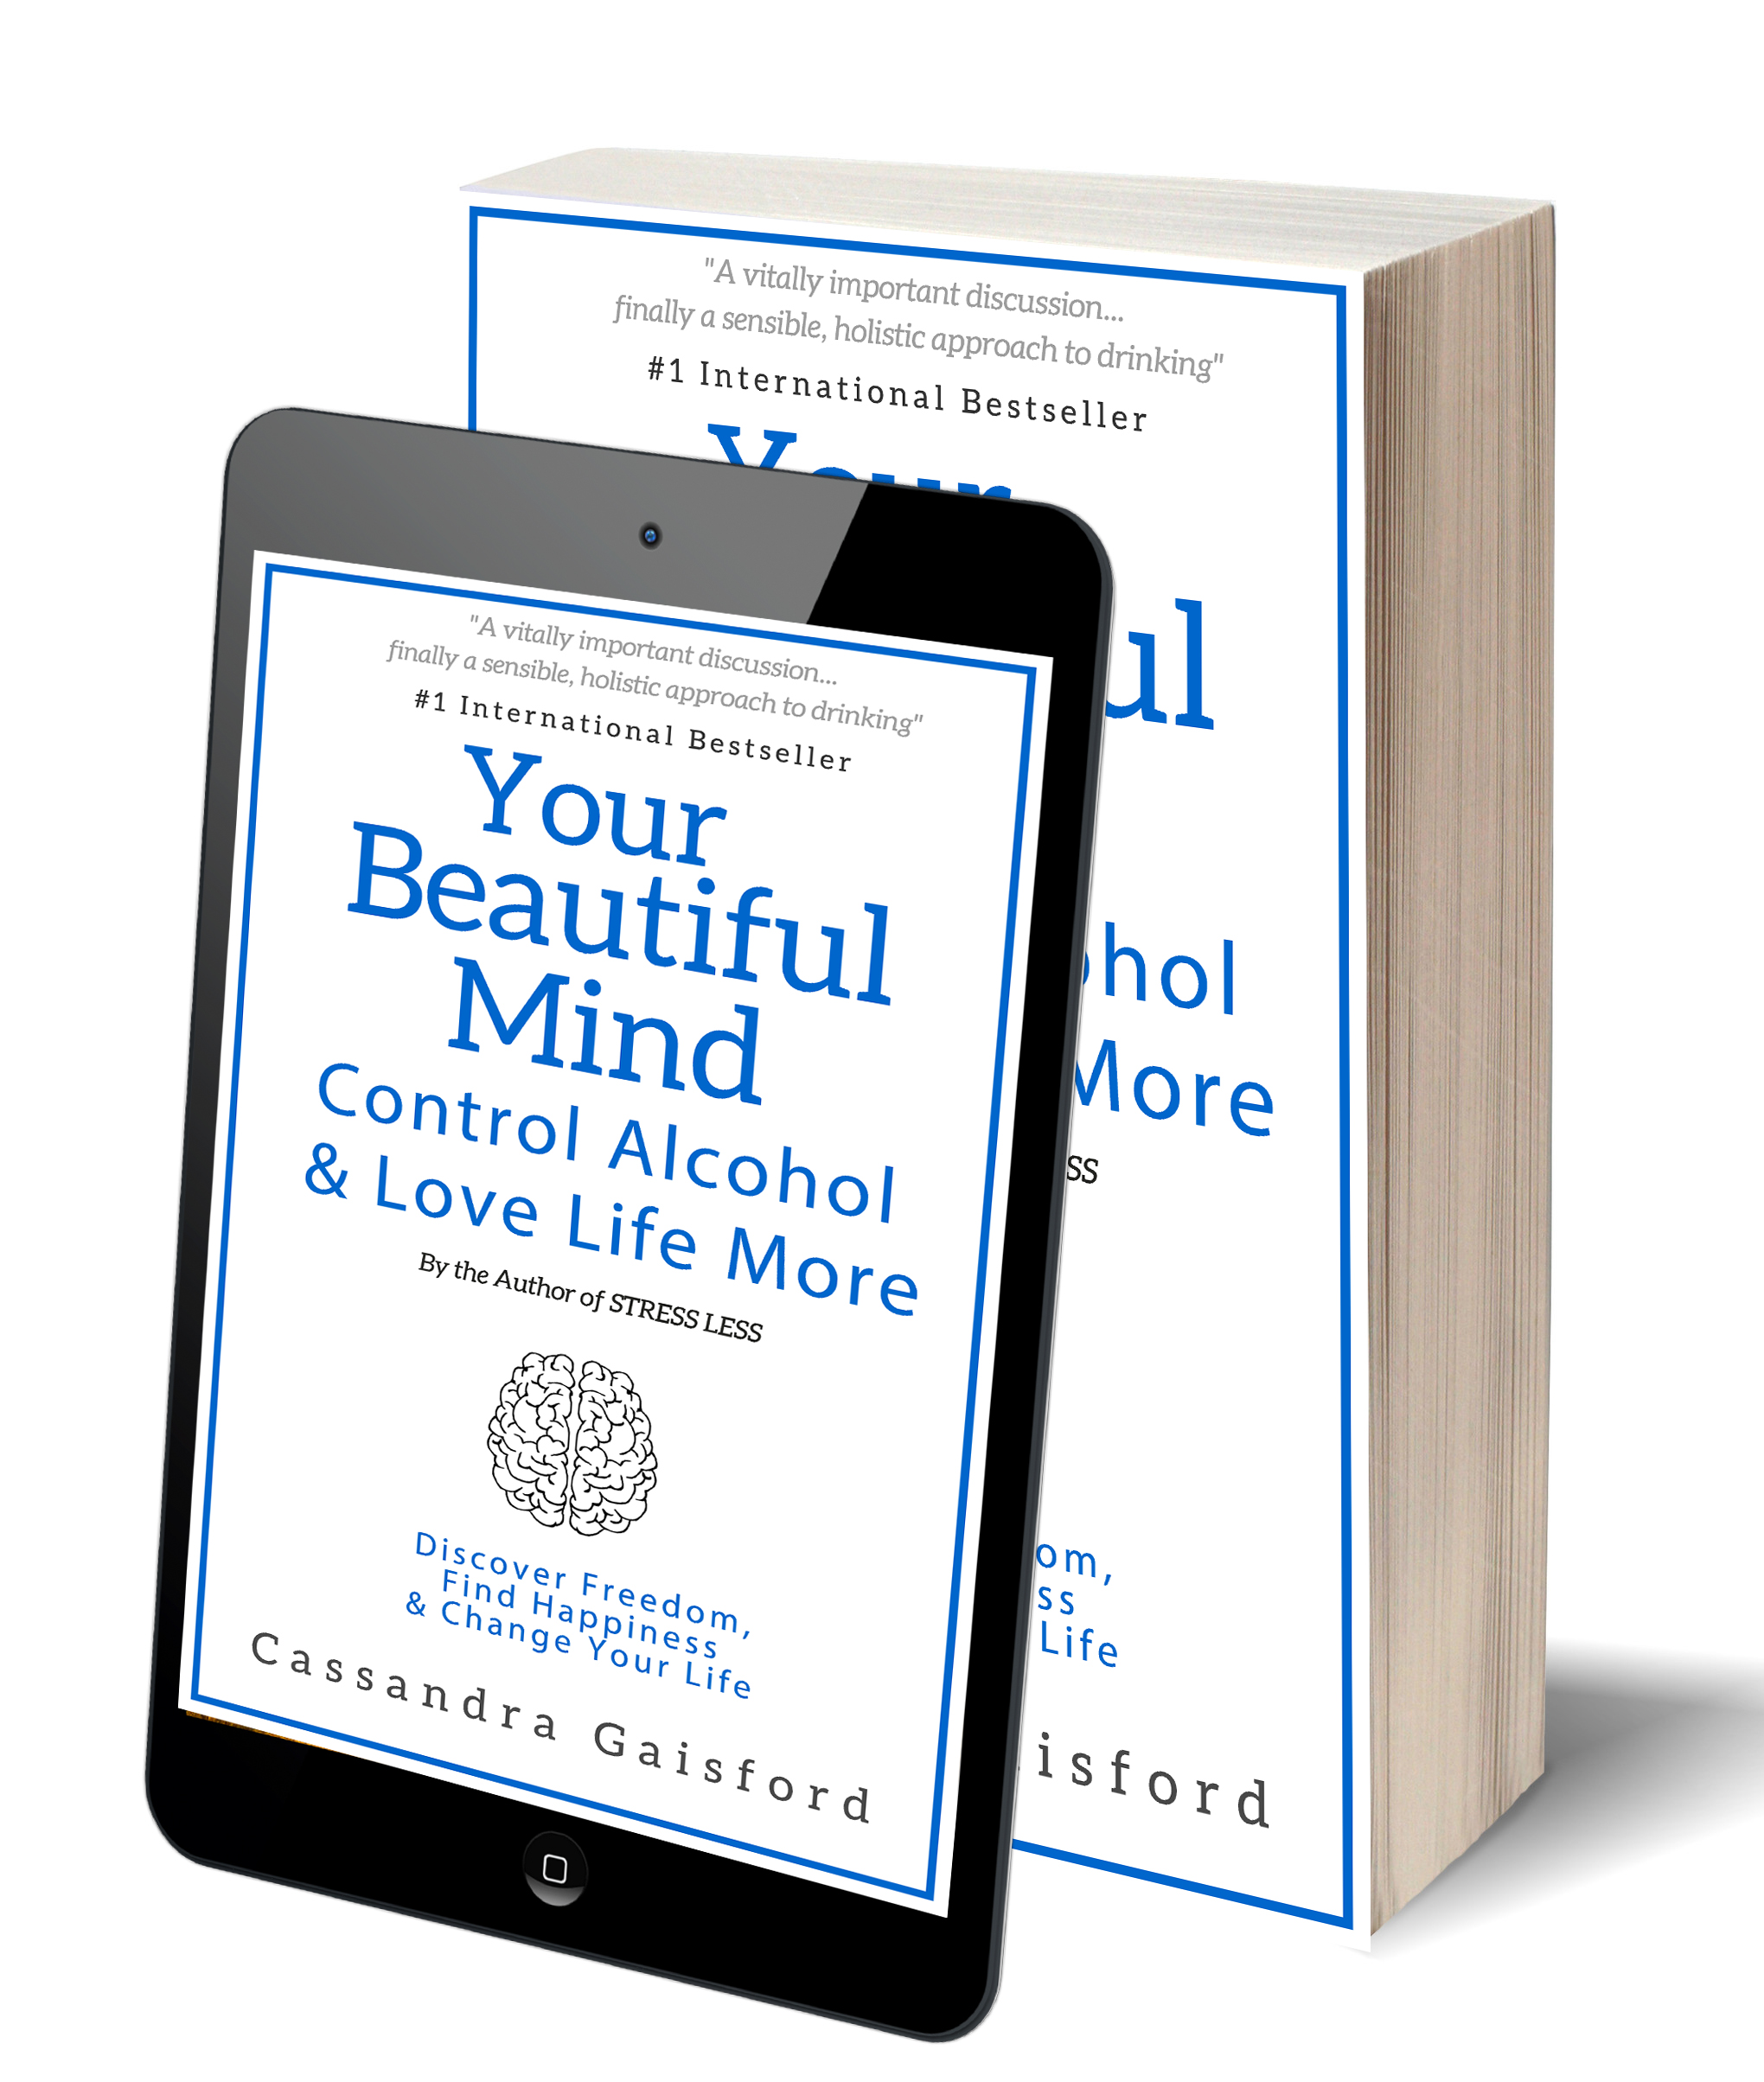 This is an edited testimonial for Cassandra Gaisford's new book Your  Beautiful Mind: Control Alcohol, Discover Freedom, Find Happiness and  Change Your Life, ...